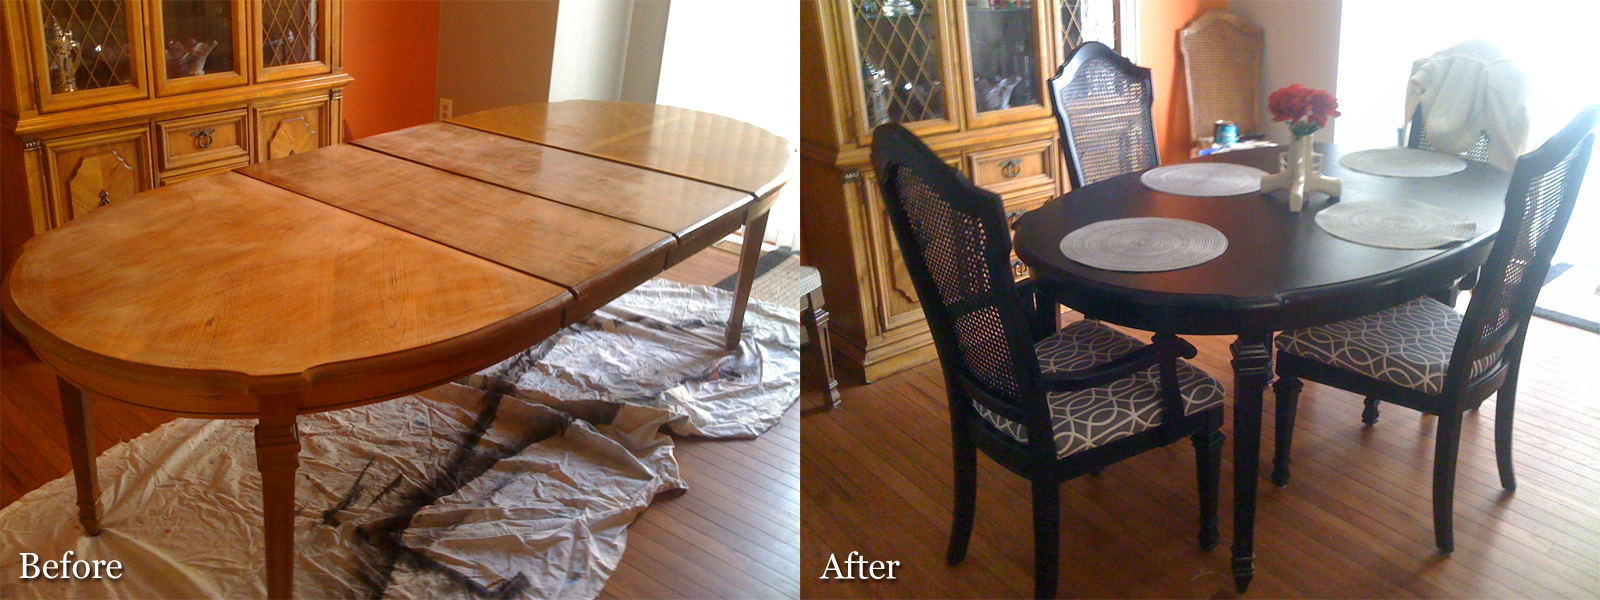 Diy refinishing a dining room table - Refinish contemporary dining room tables ...